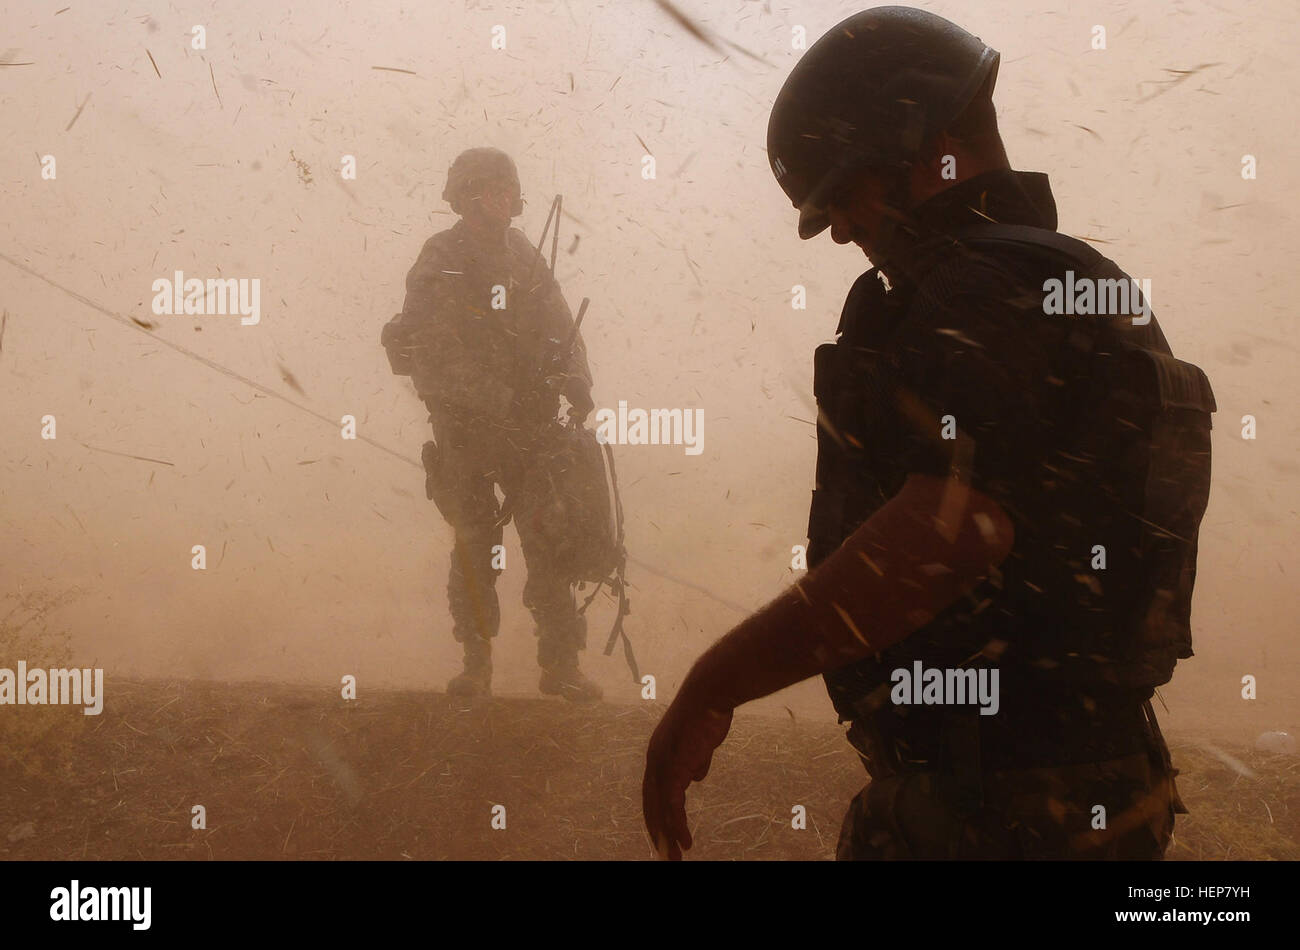 The rotor wash from a UH-60 Blackhawk helicopter temporarily blinds an Iraqi SWAT policemen and his U.S. counterpart. - Stock Image